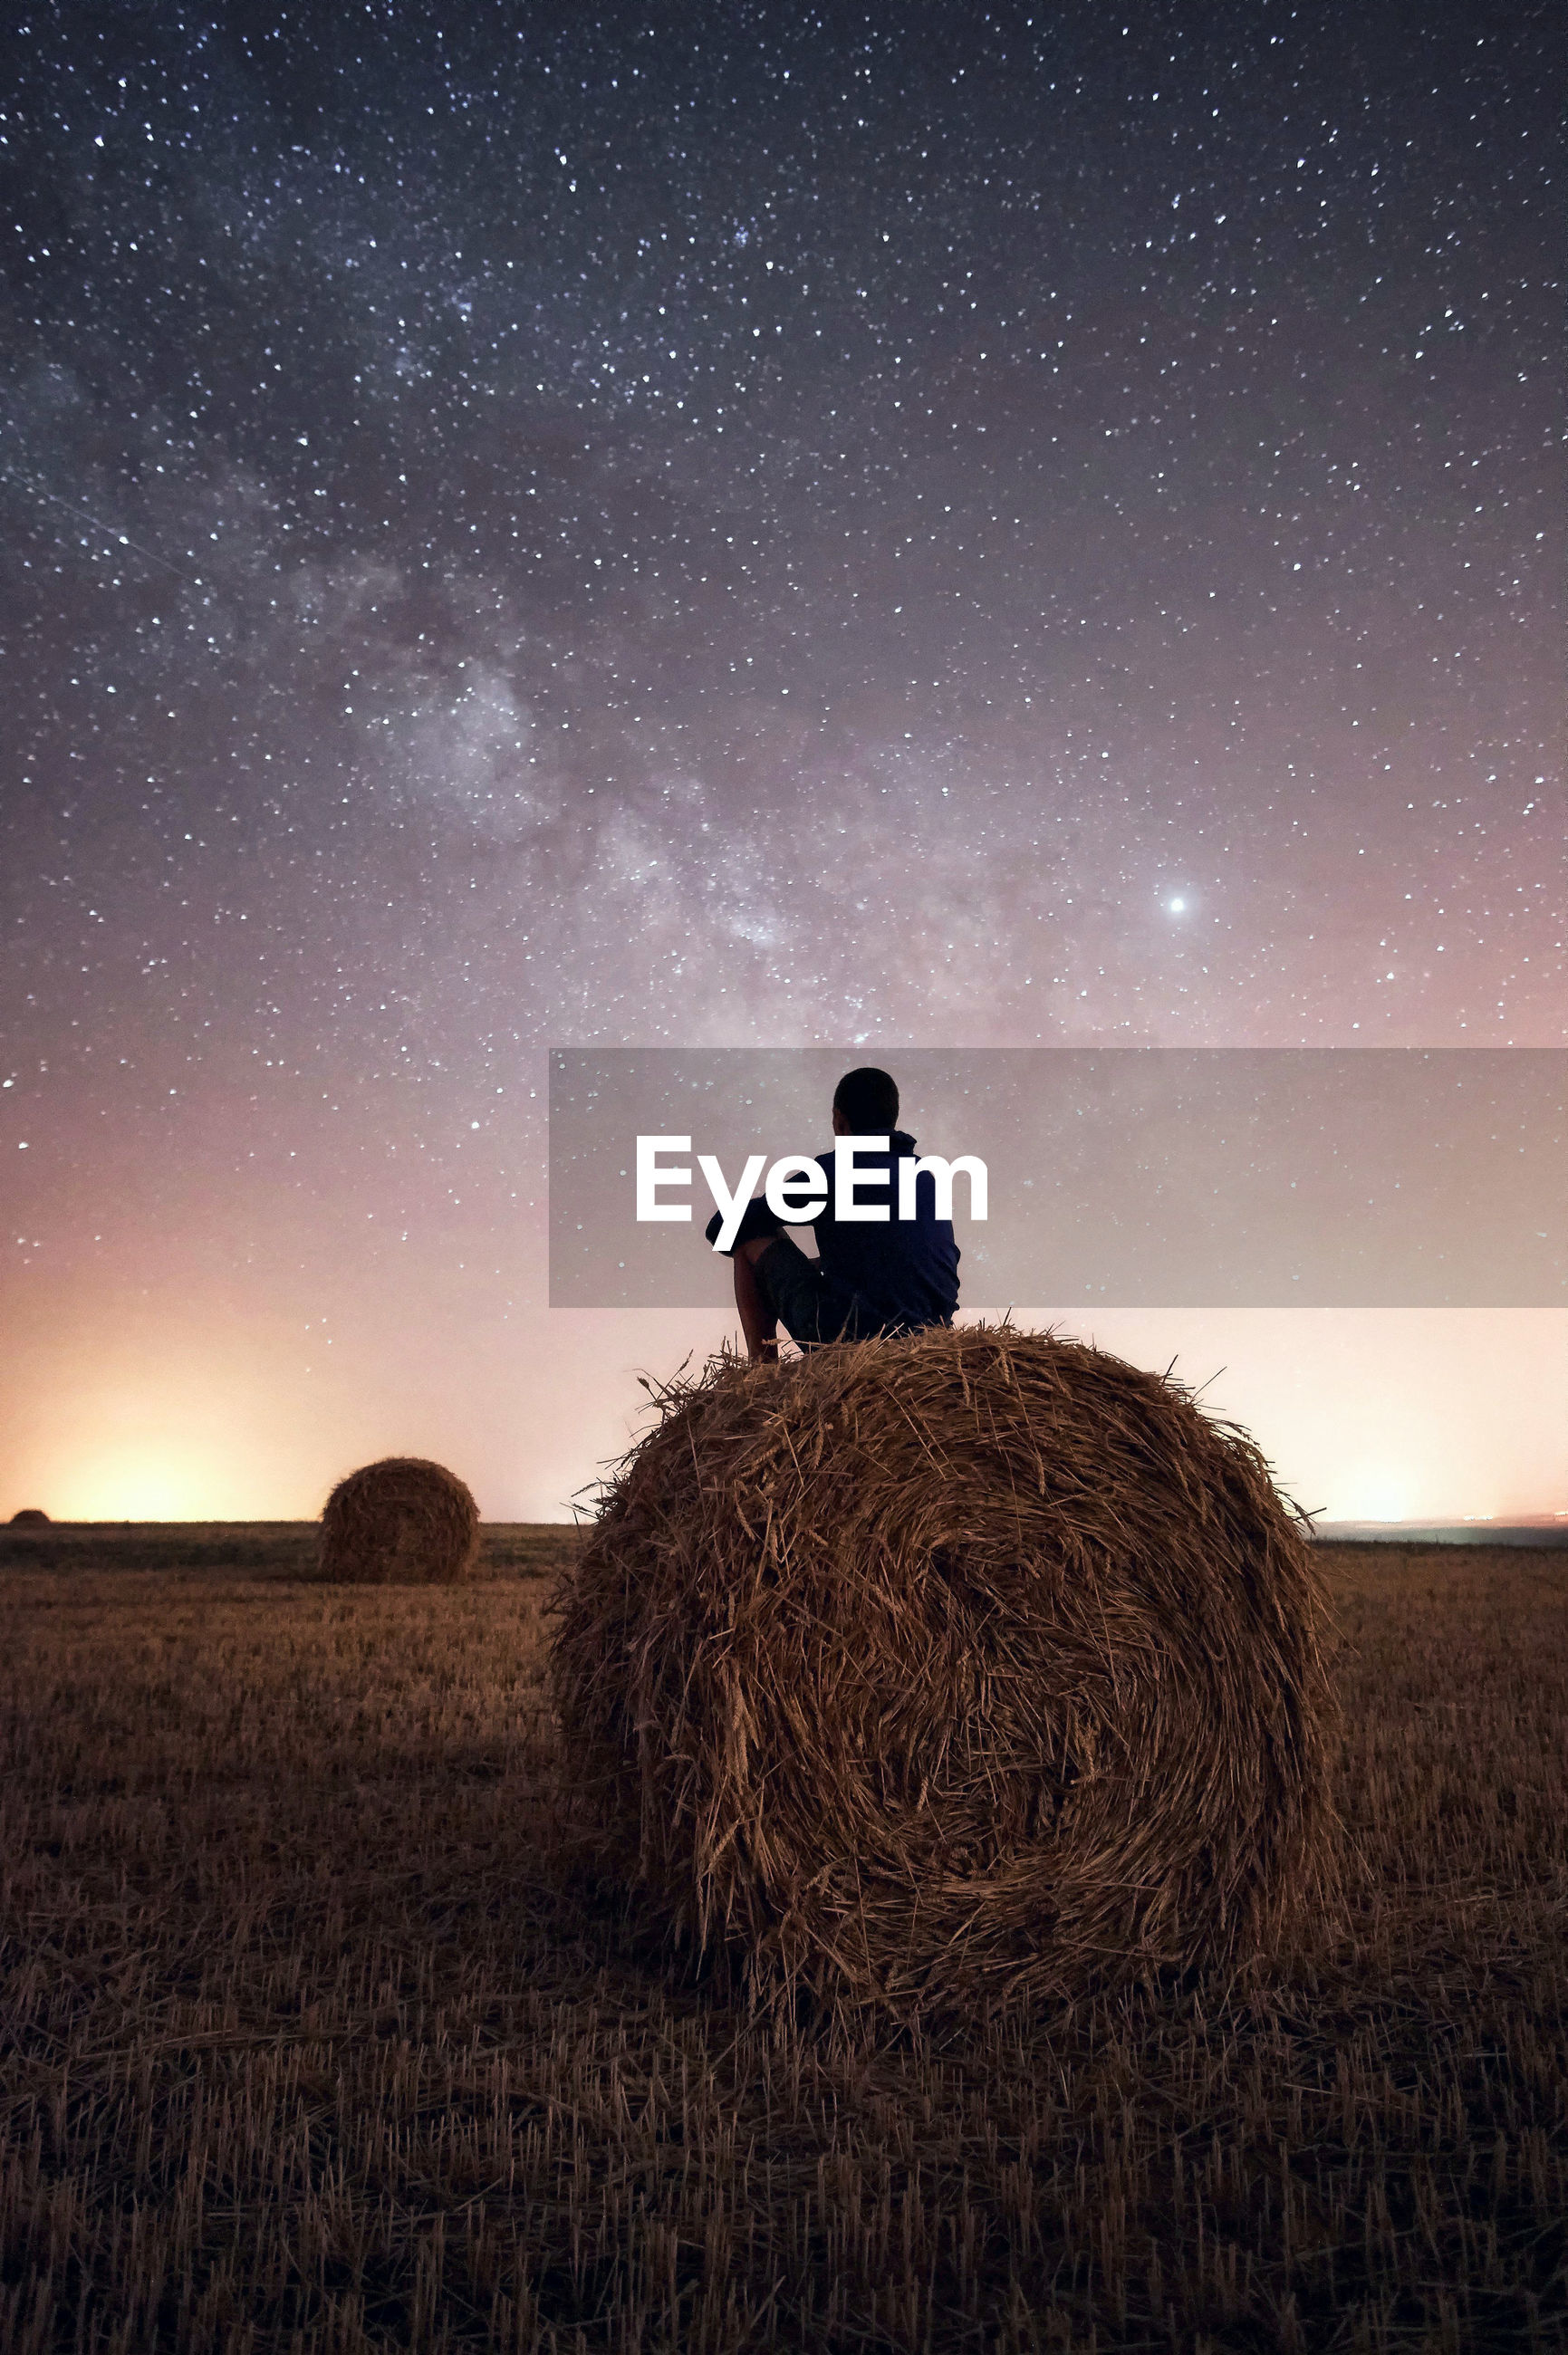 Man sitting on hay bale against sky at night